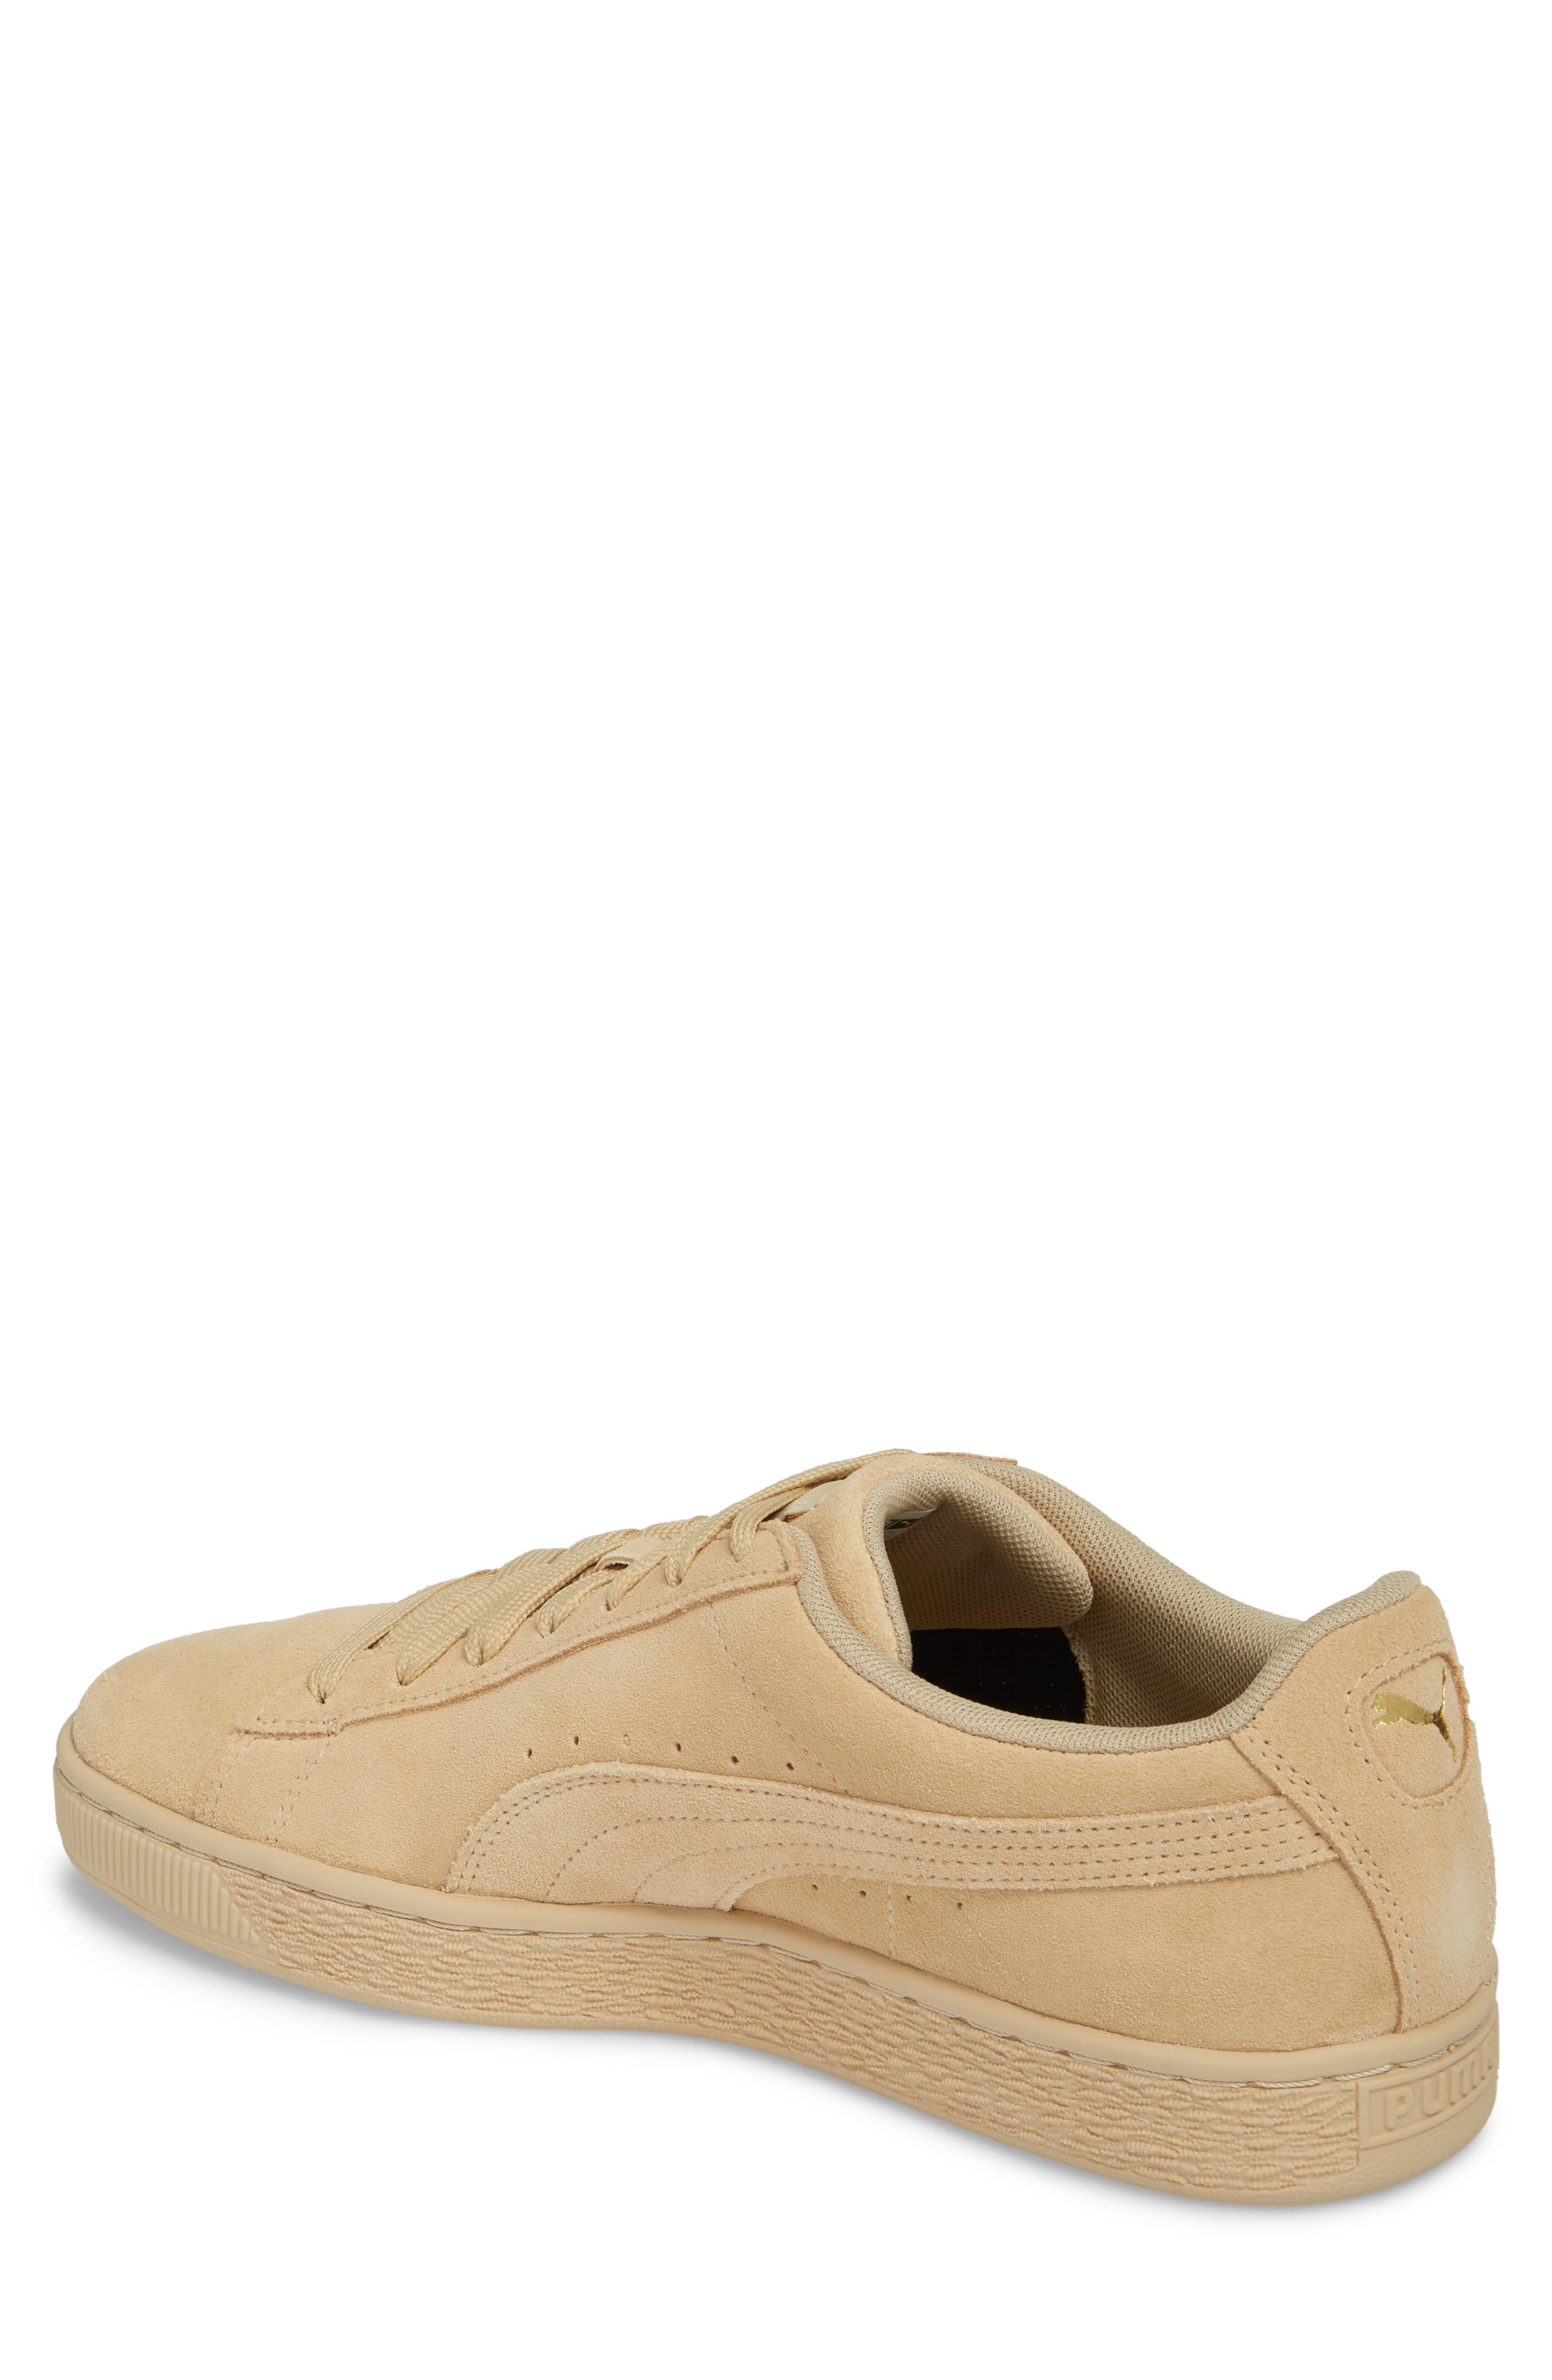 Suede Classic Tonal Sneaker,                             Alternate thumbnail 2, color,                             PEBBLE SUEDE